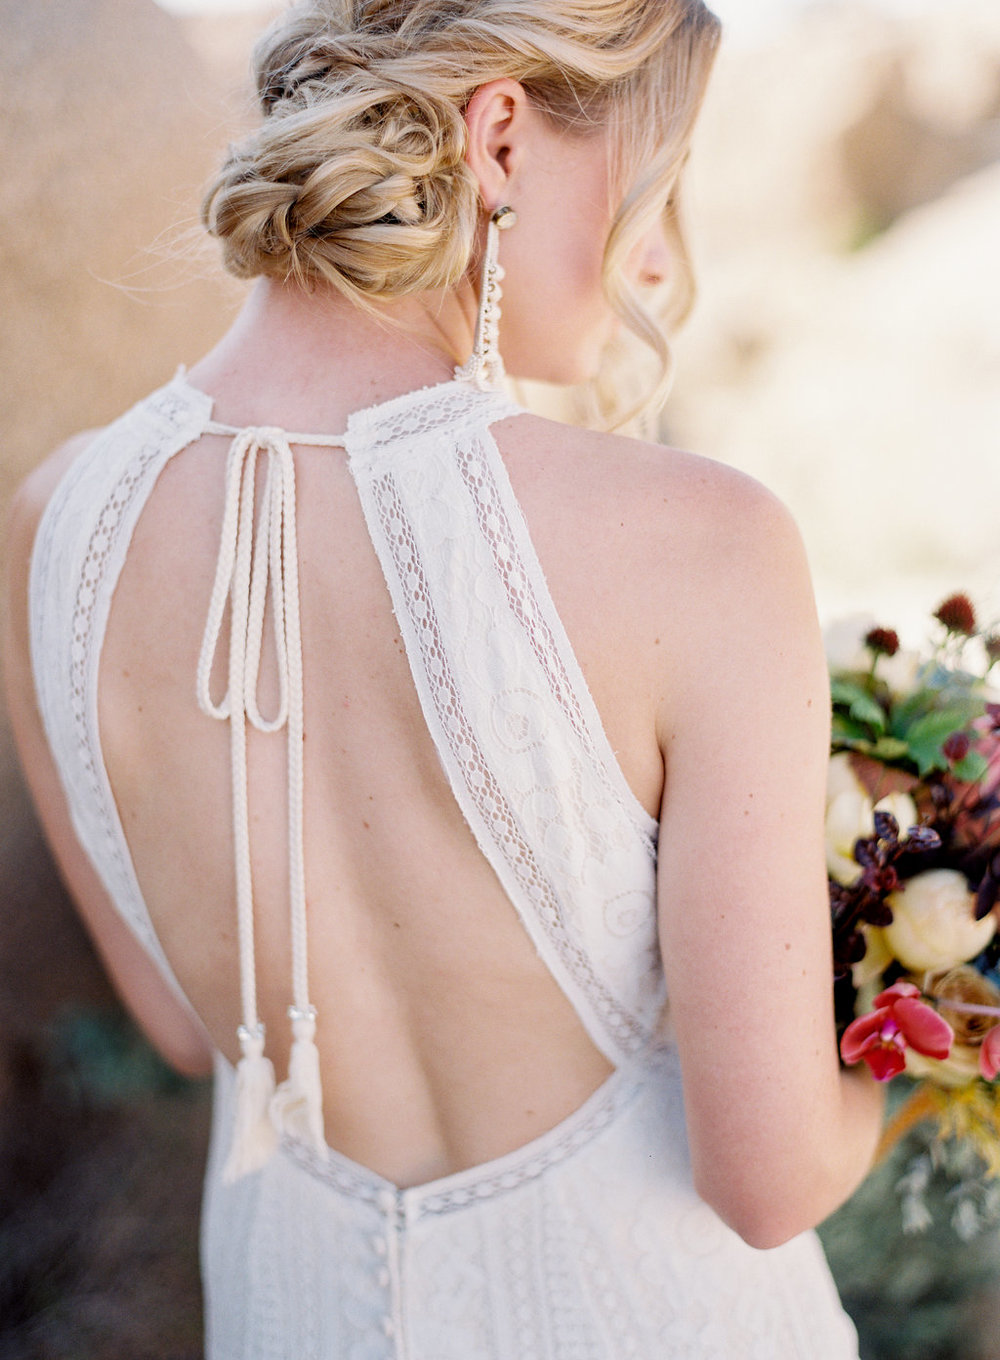 Low Back Wedding Dresses | Inventory # 02277 | available at Bride To Be Couture | 6040 Fair Oaks Blvd. Carmichael, CA 95608 | 916.972.8223 | @bridetobecouture